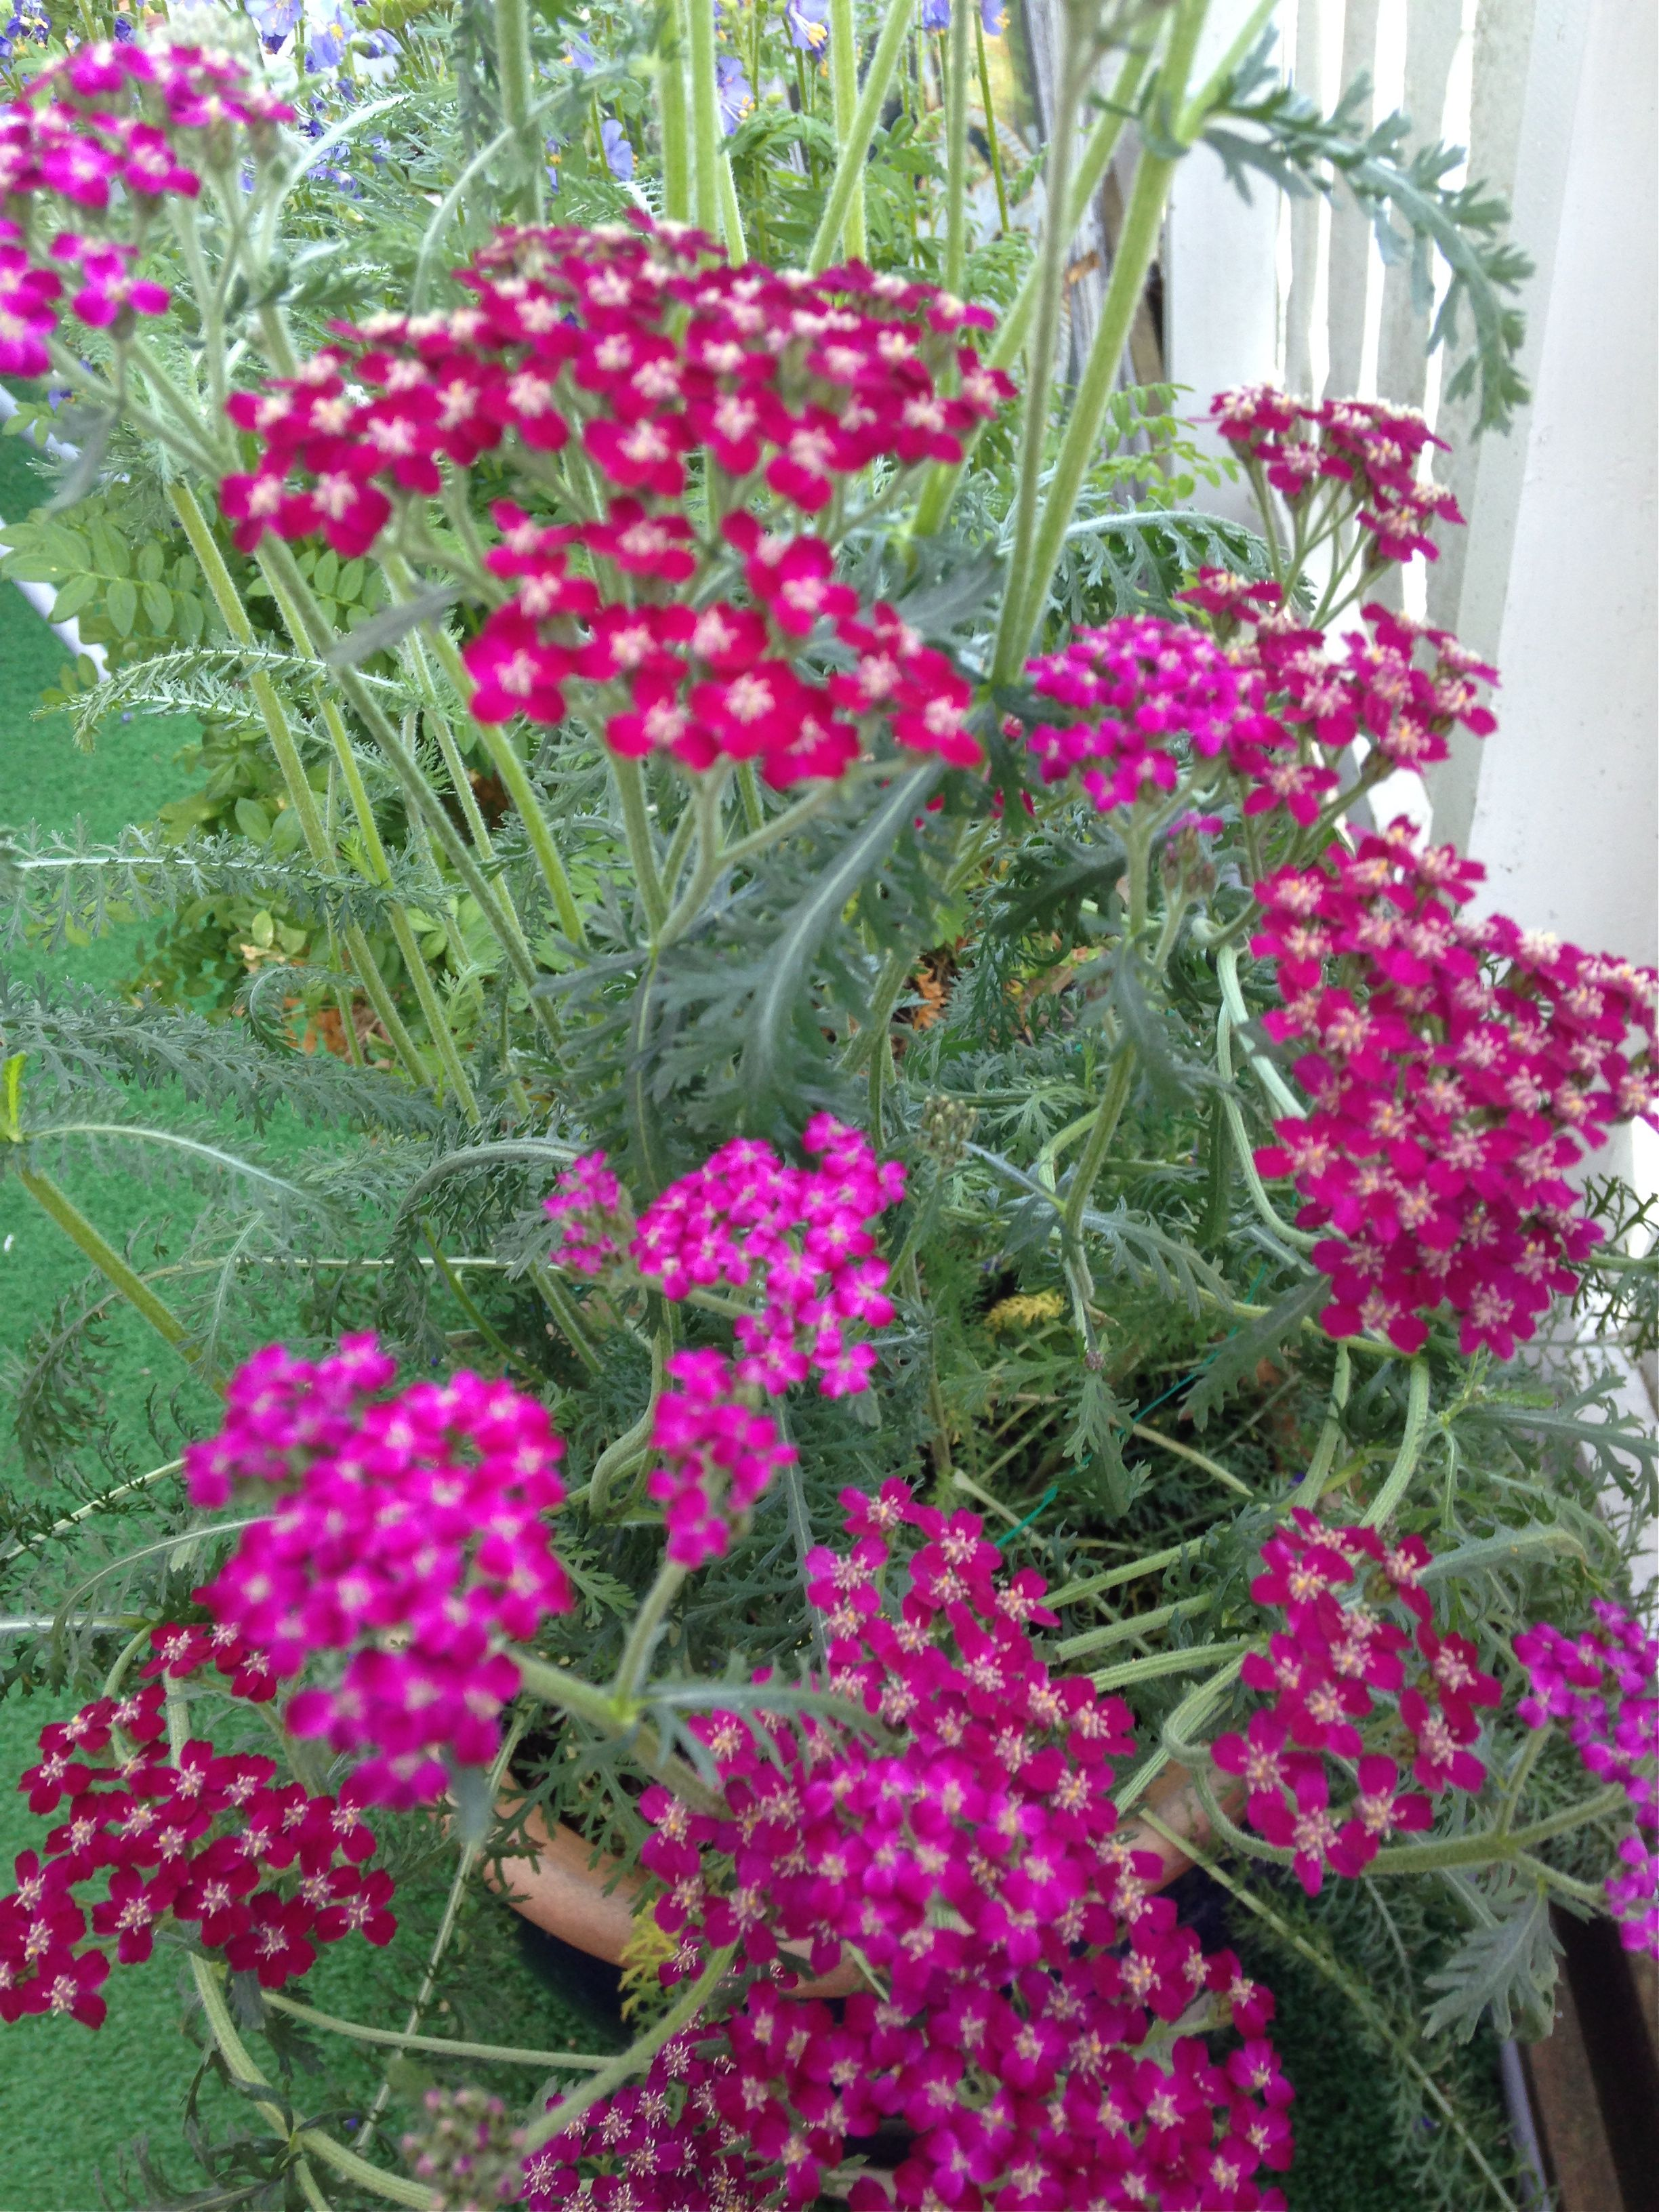 "Ryllik - denne vokser i en krukke på terassen - The Yarrow Achillea grows in a pot on the terrace :) ""Margeritten"" by IJ 20.7.14"